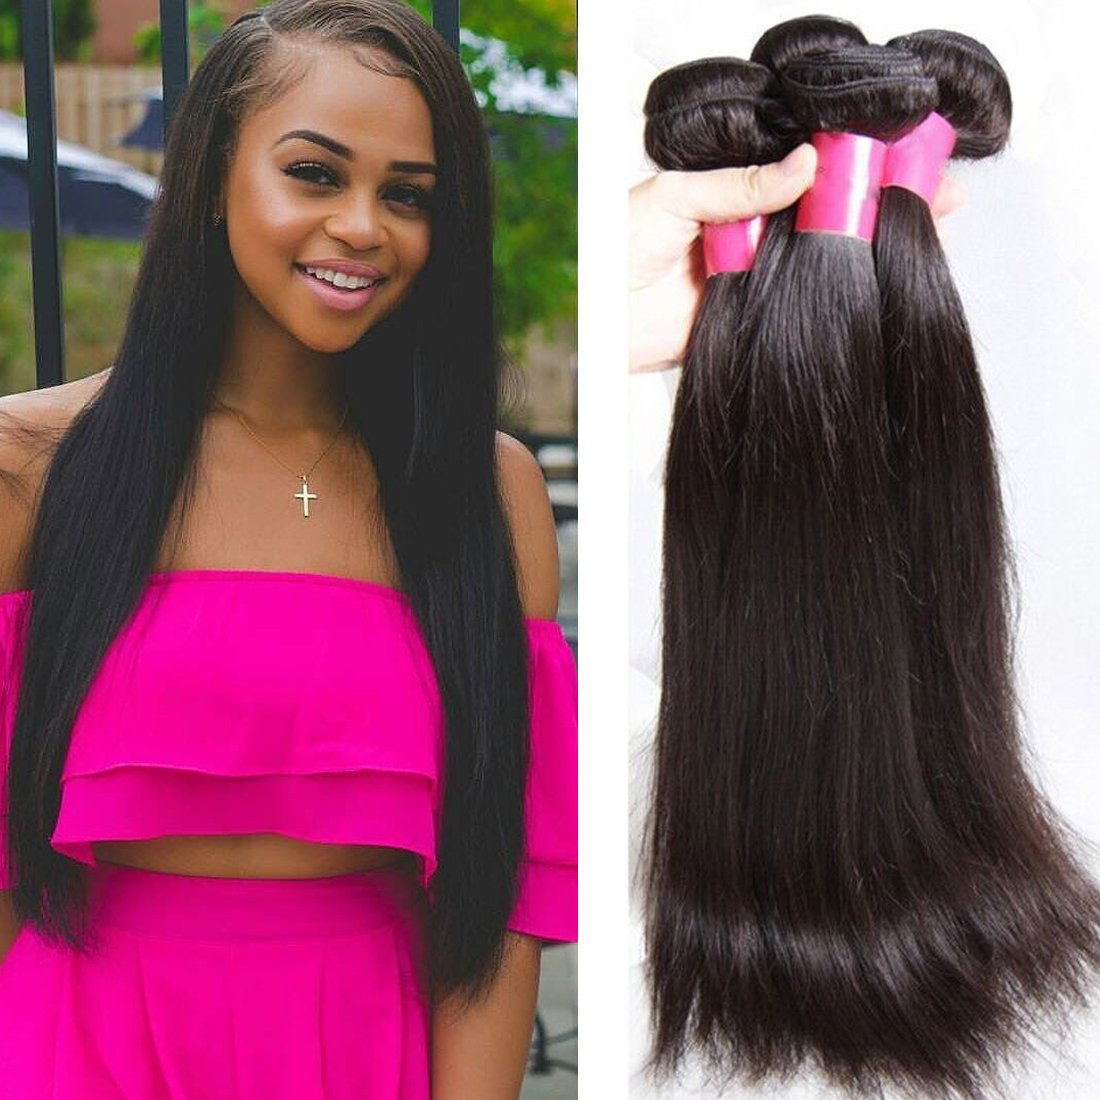 YIROO Brazilian Virgin Straight Hair Weave 3 Bundles 7A 100% Unprocessed Brazilian Virgin Human Hair Weave Extensions Natural Color 95-100g/pc (8 10 12 inch)